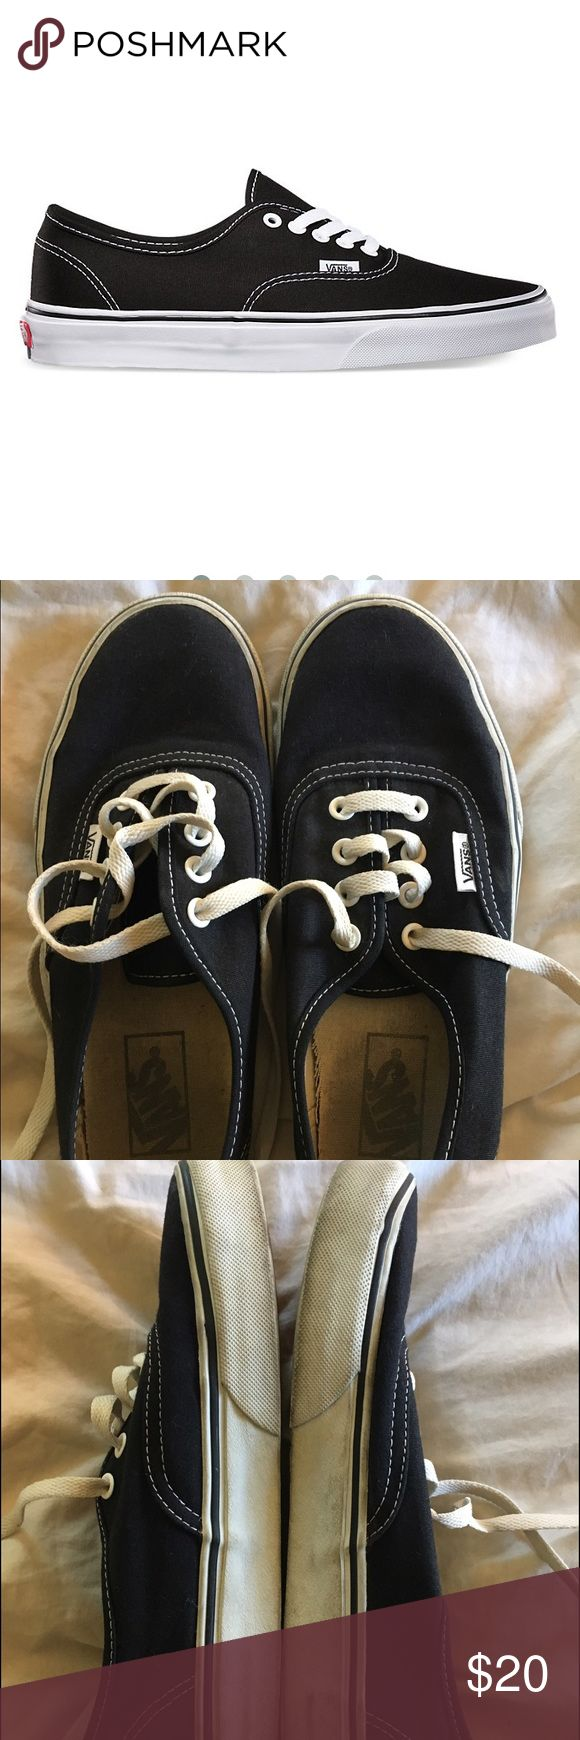 Vans Authentic Black Authentic vans in black! Pre-loved condition! Obviously these have been worn several times but still in good condition - most sign of wear is on inside! Lots of life left! Vans Shoes Sneakers